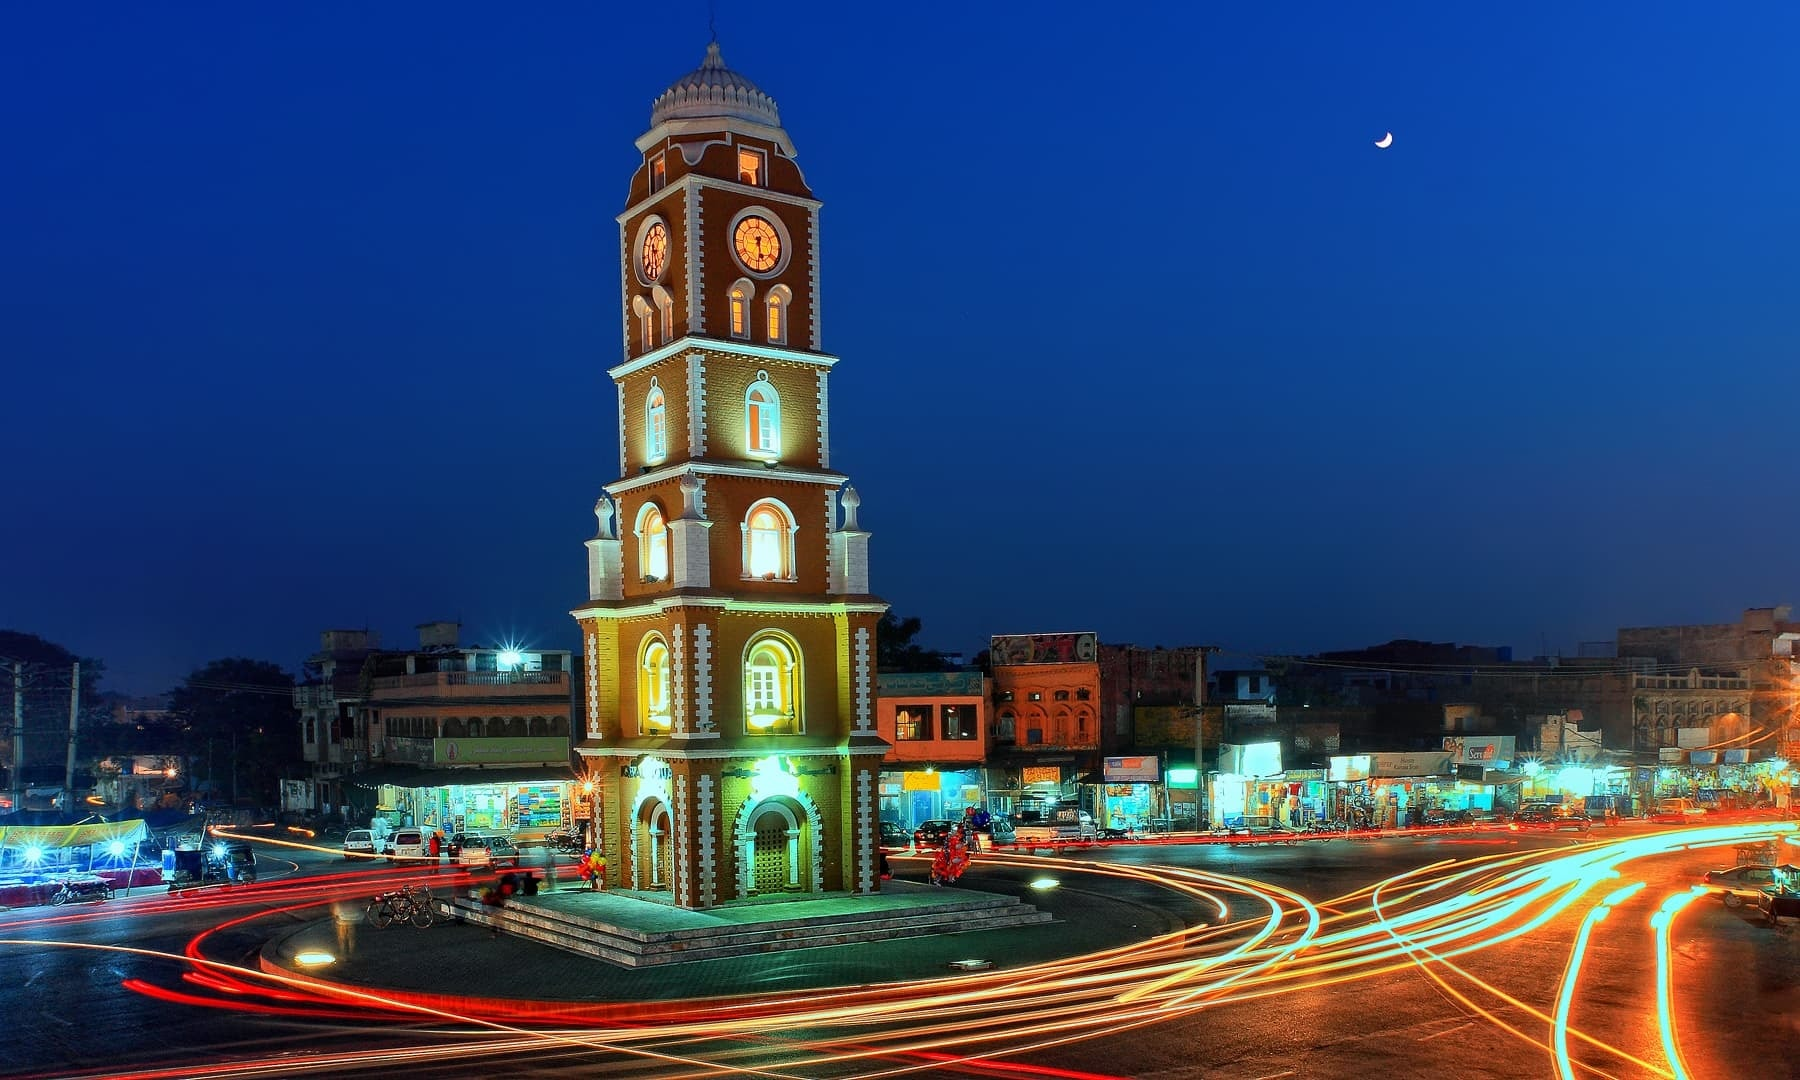 Sialkot's clock tower.